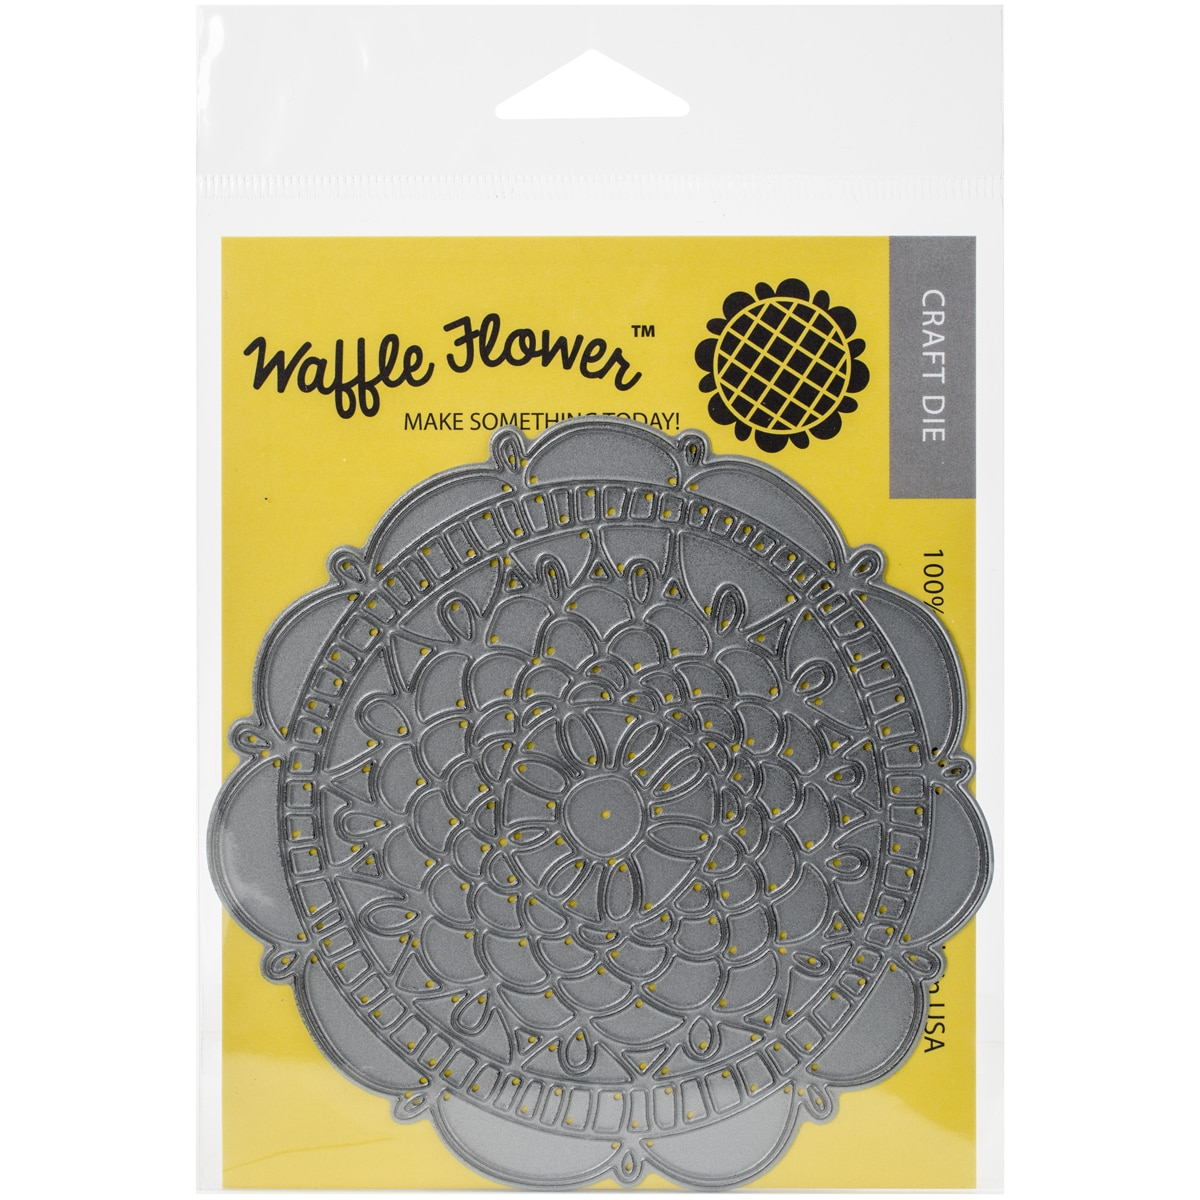 Waffle Flower DieDoily Circle (Doily Circle), Silver stee...